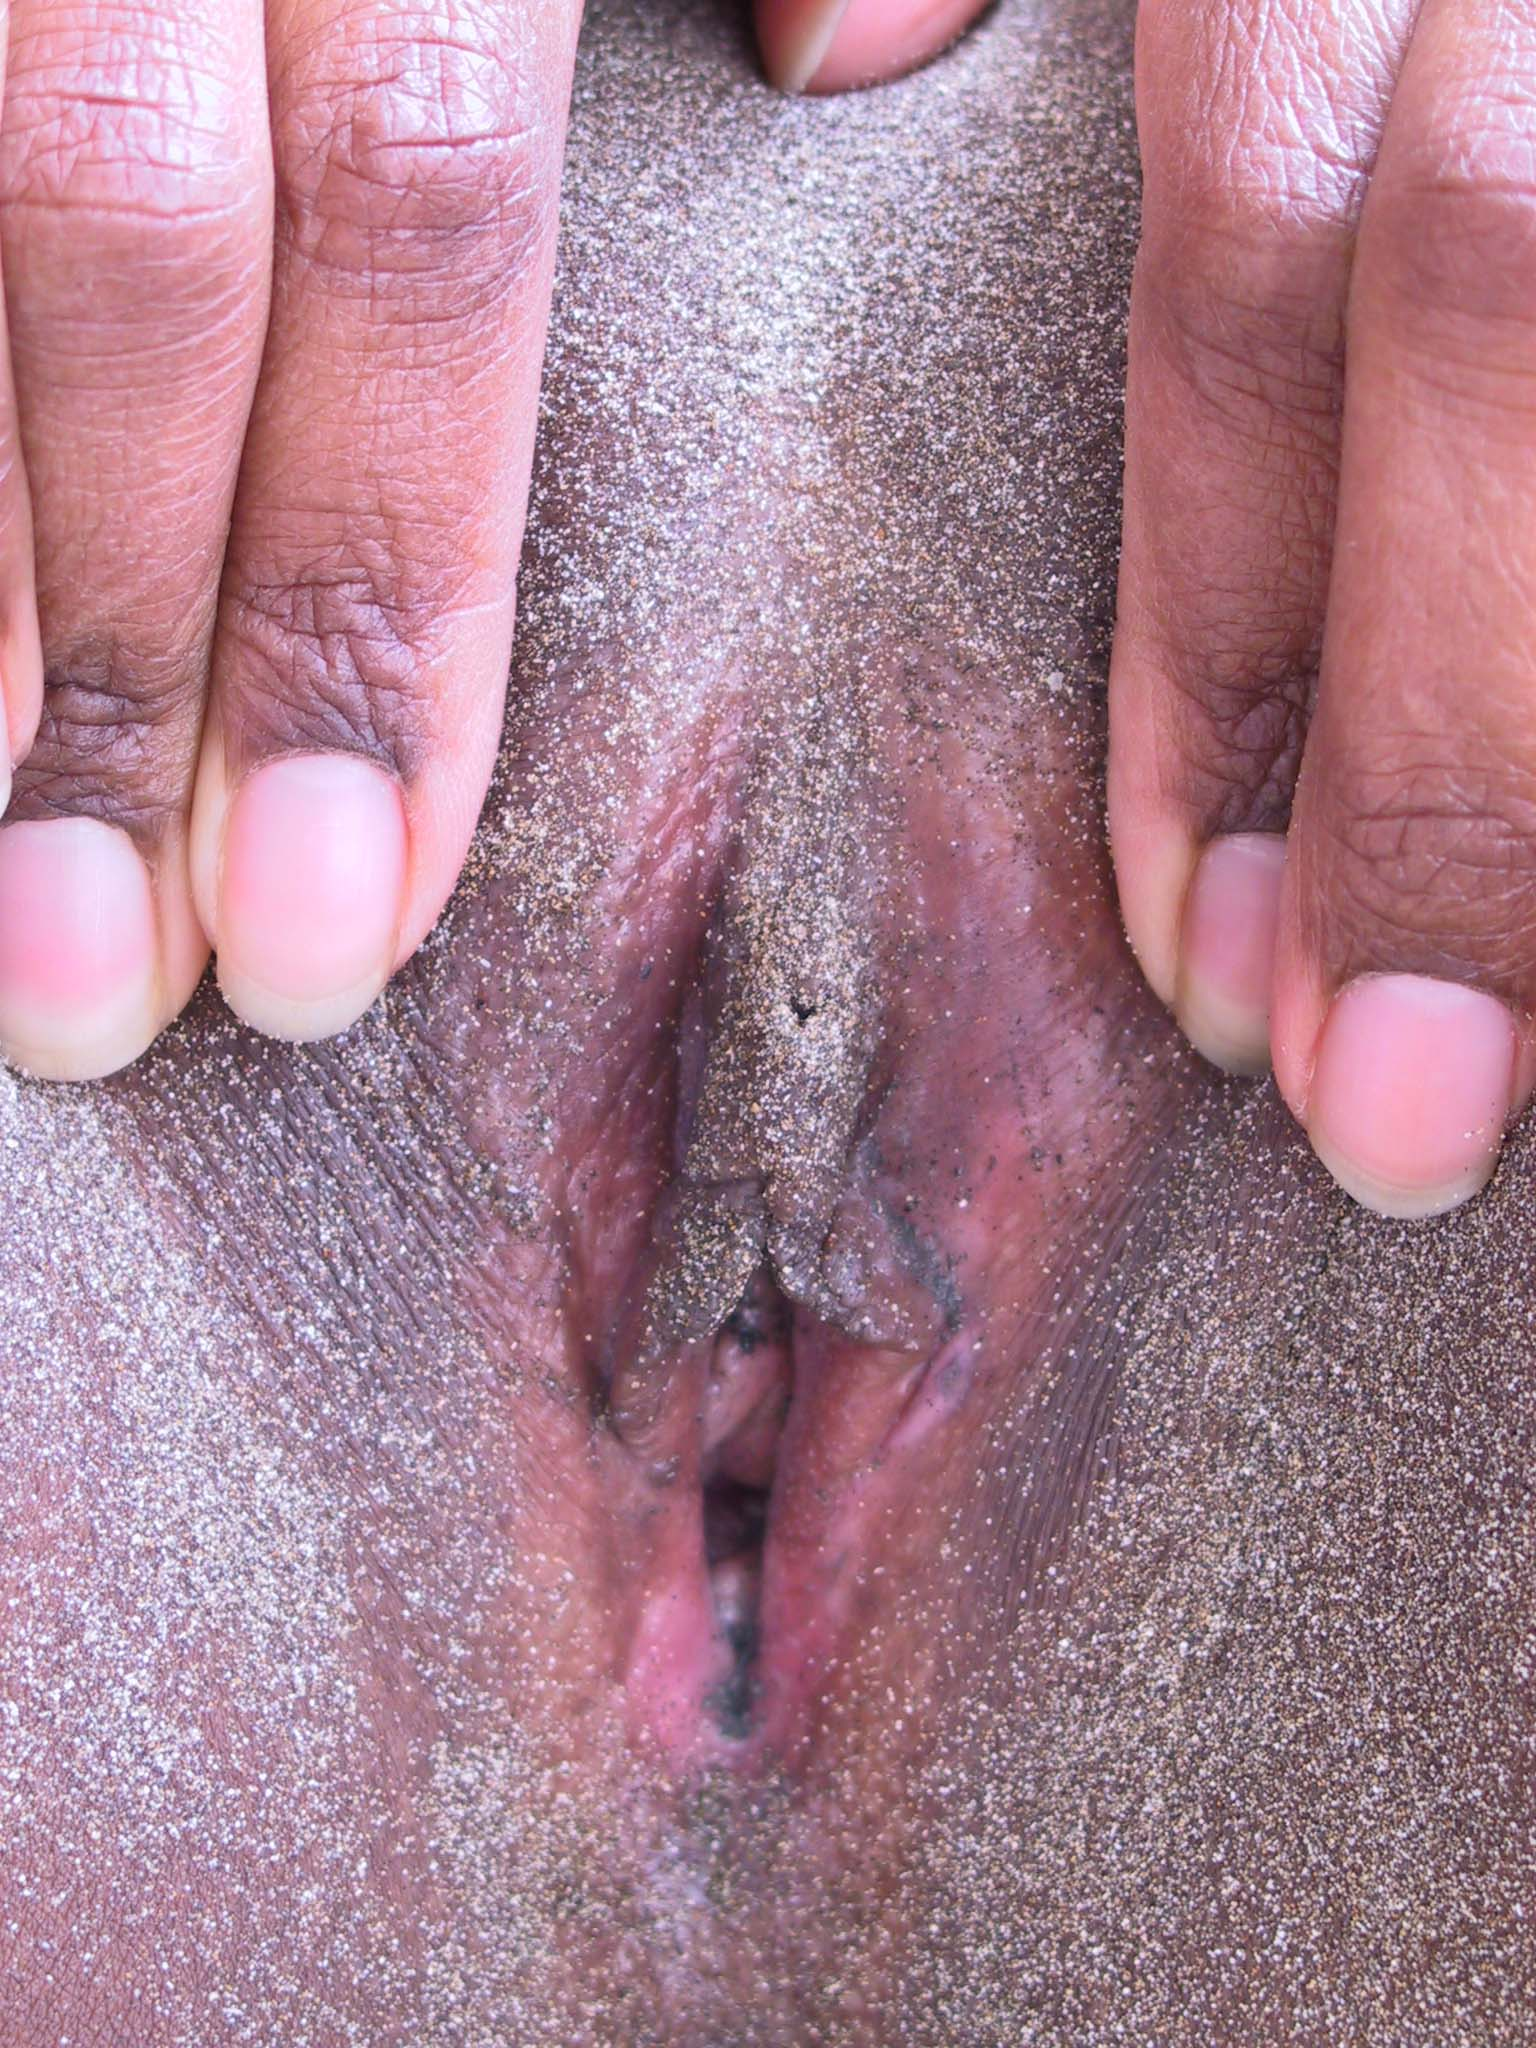 Dirt in pussy, female pussy male dick